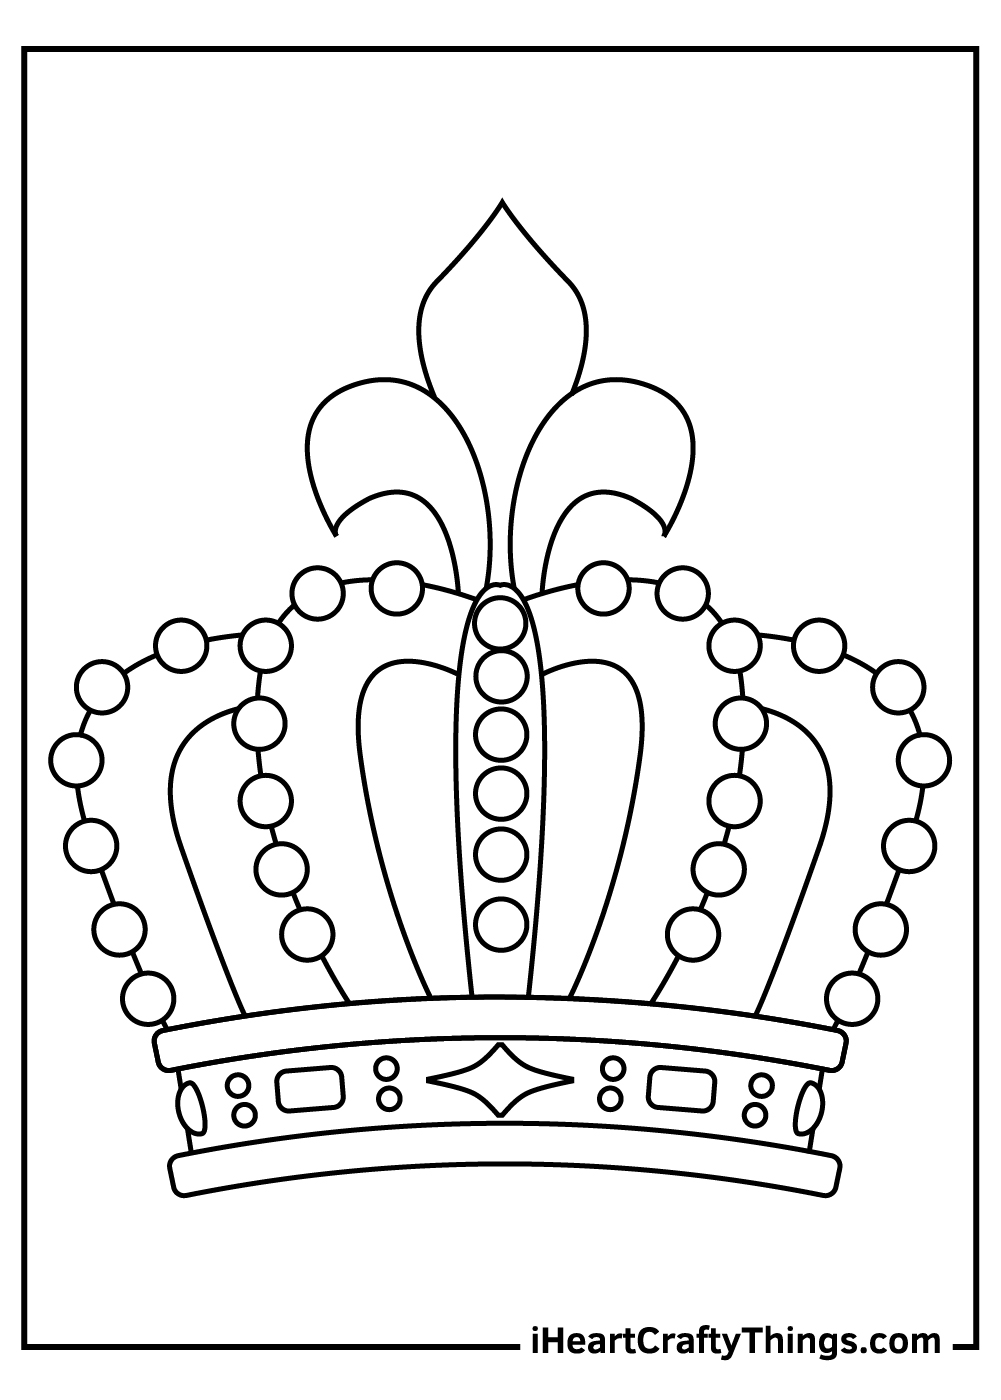 realistic crown coloring pages free download